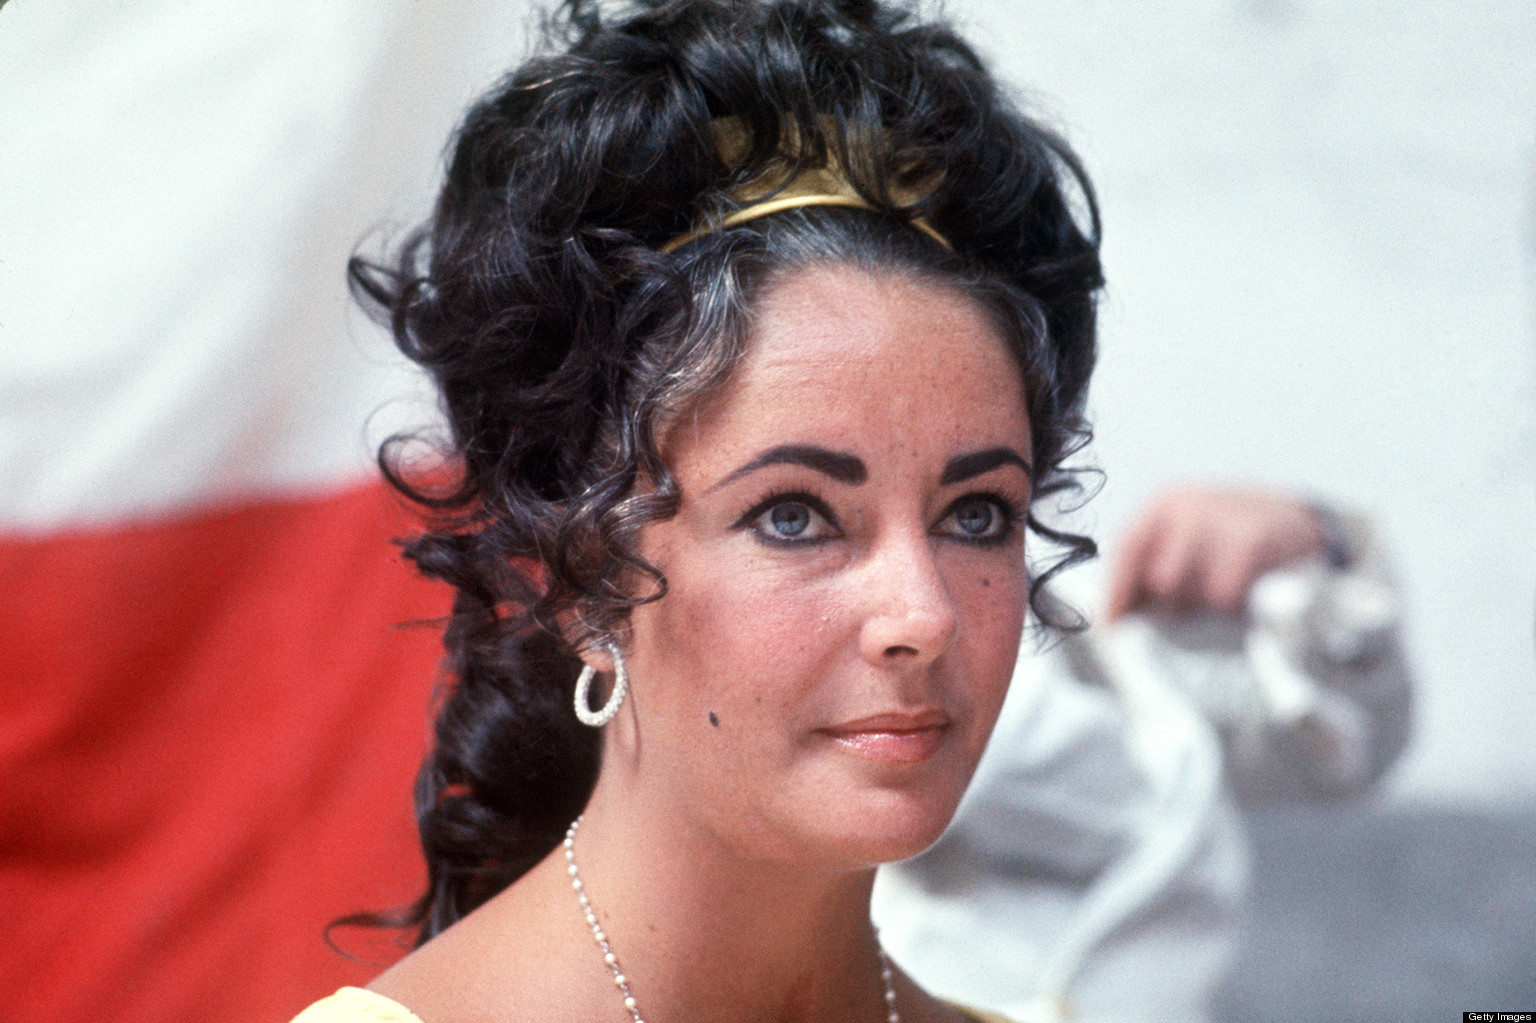 Merveilleux Elizabeth Taylor Death Anniversary: Legendary Actress Died Two Years Ago |  HuffPost